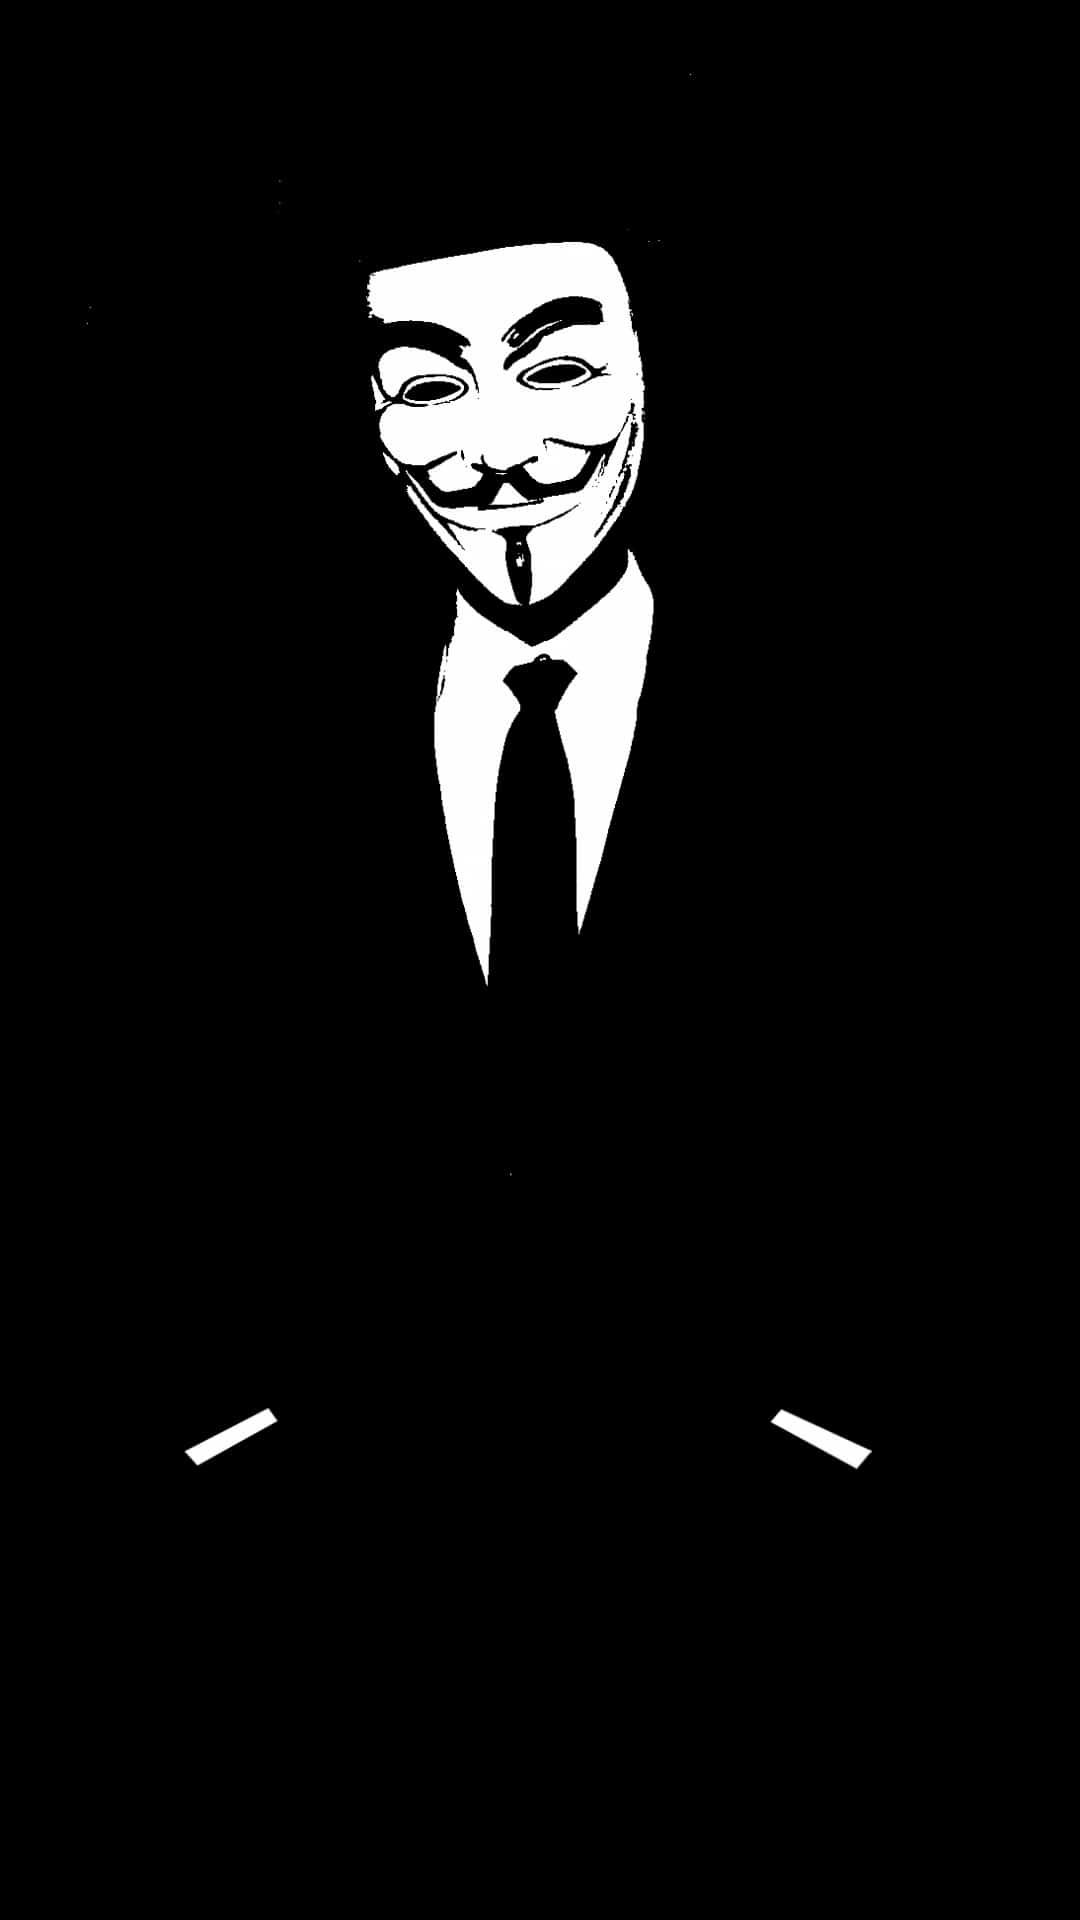 Mobworg 15811 Anonymous Mask Wallpaper